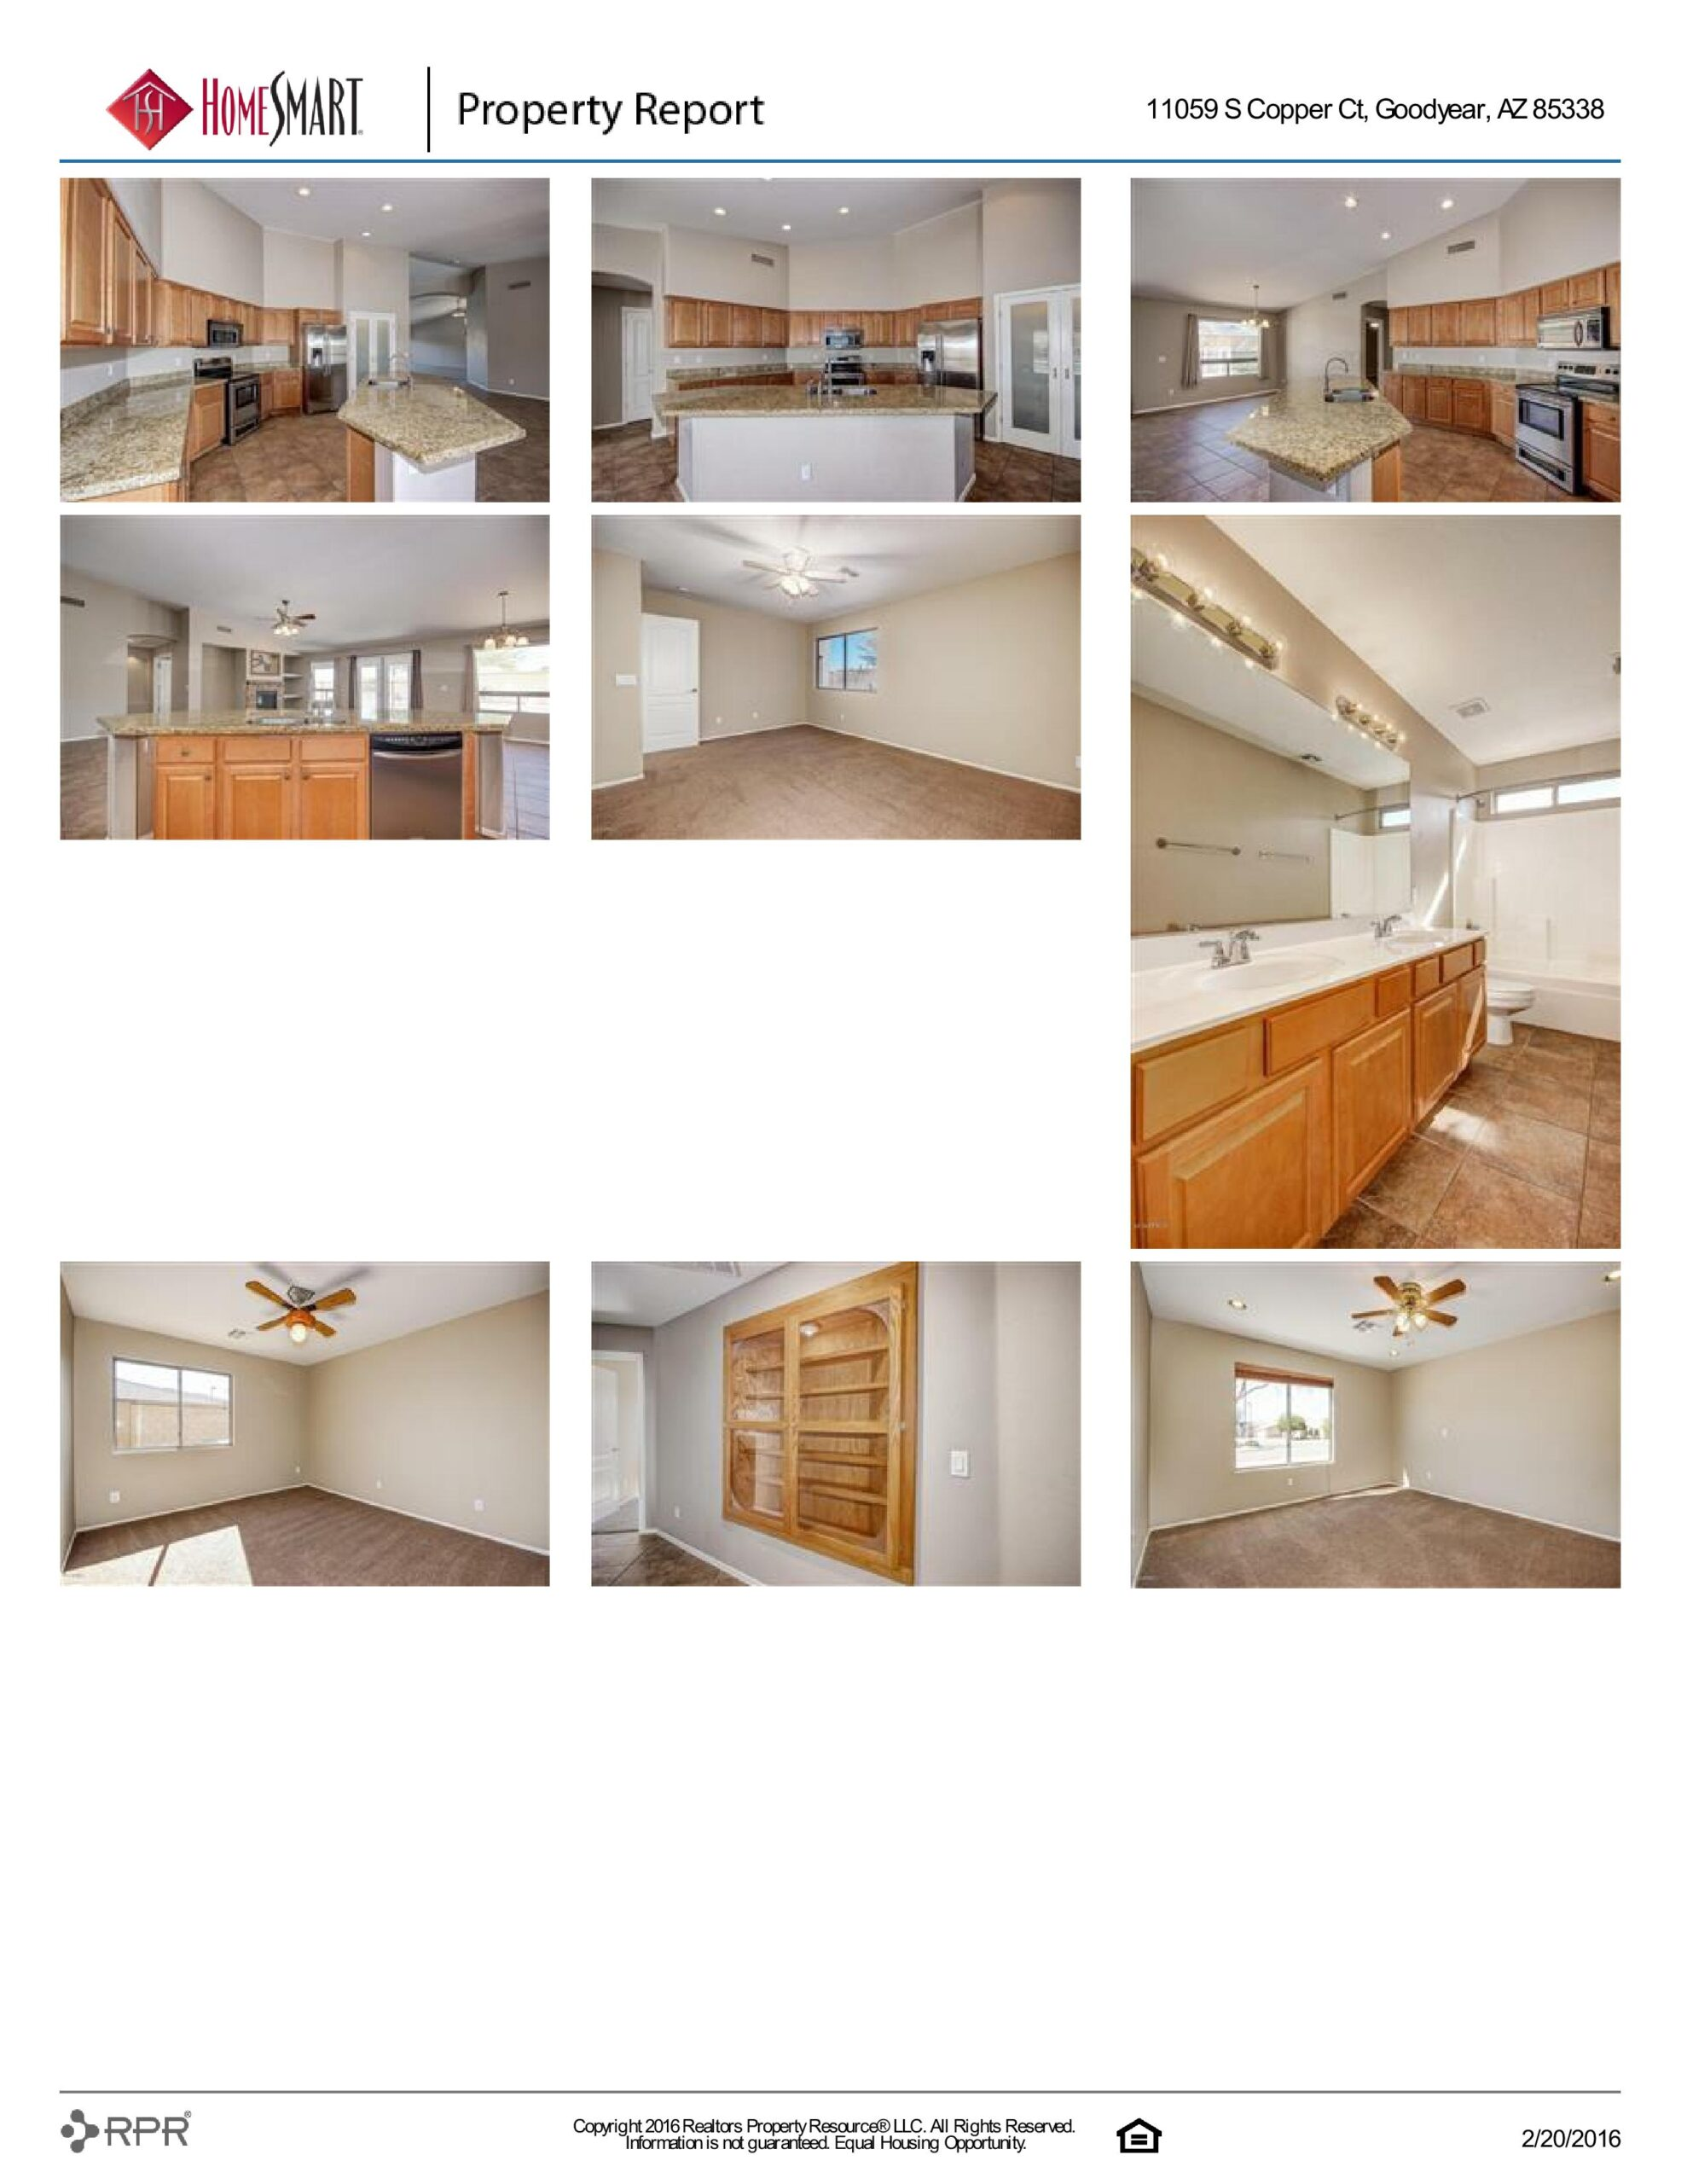 11059 S COPPER CT PROPERTY REPORT-page-007